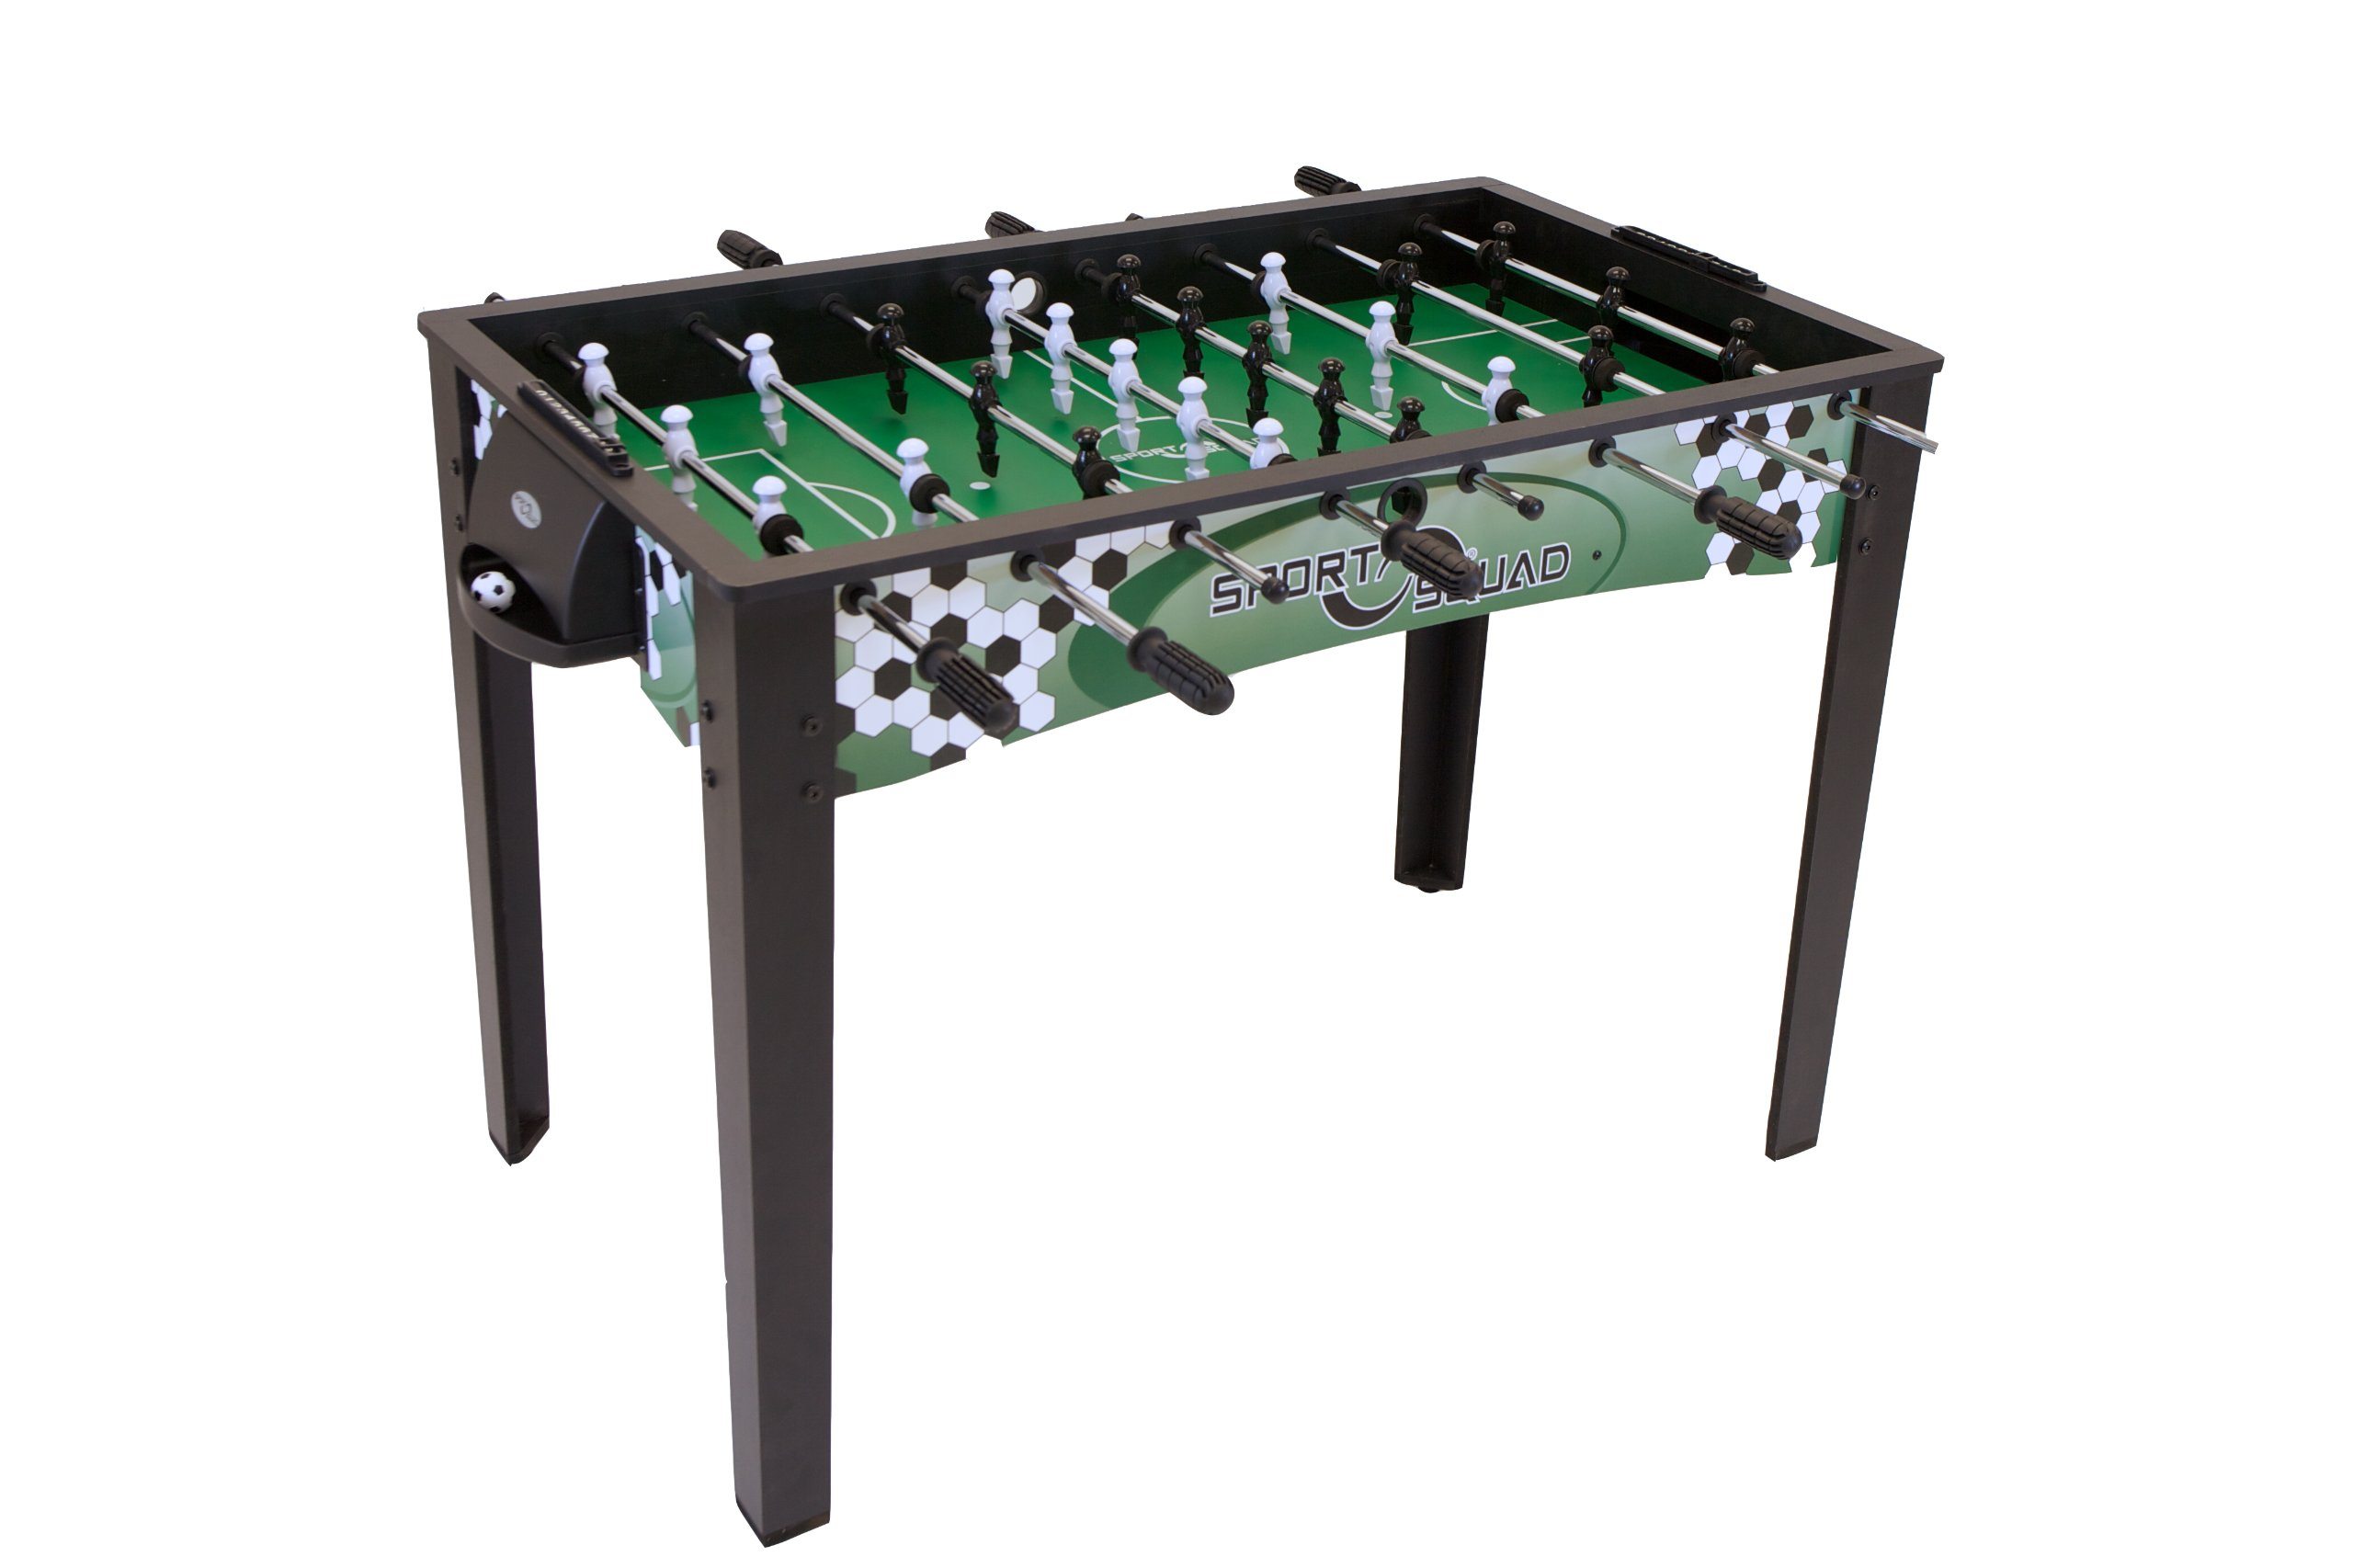 Sport Squad FX48 - 48'' Foosball Table for Adults and Kids - Arcade Table Soccer Game for the Basement or Game Room - Quick and Easy Assembly - Manual Scorers and Chrome Plated Steel Rods by Sport Squad